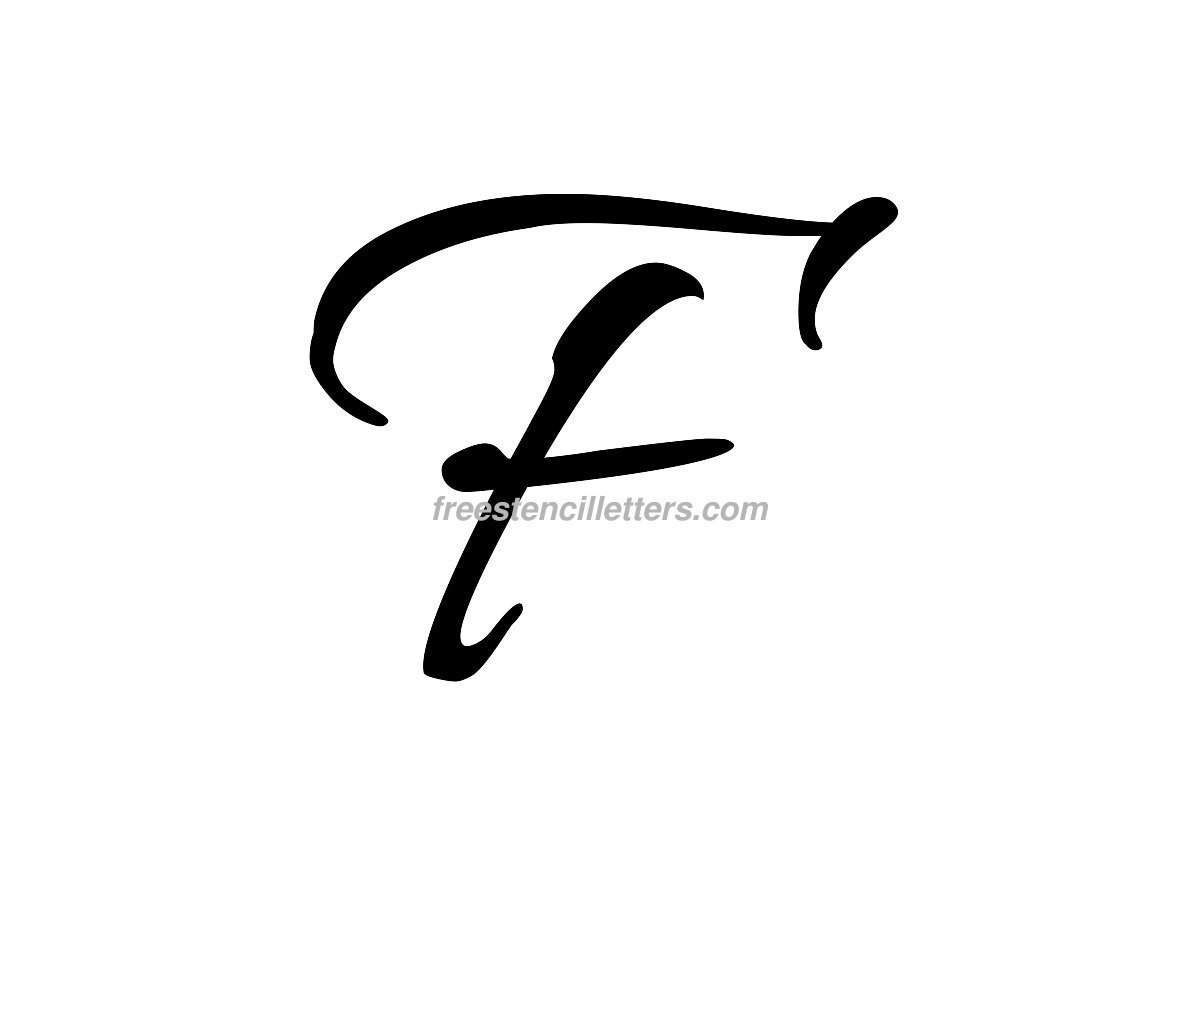 Best 36+ Cursive Letter F Wallpapers On Hipwallpaper